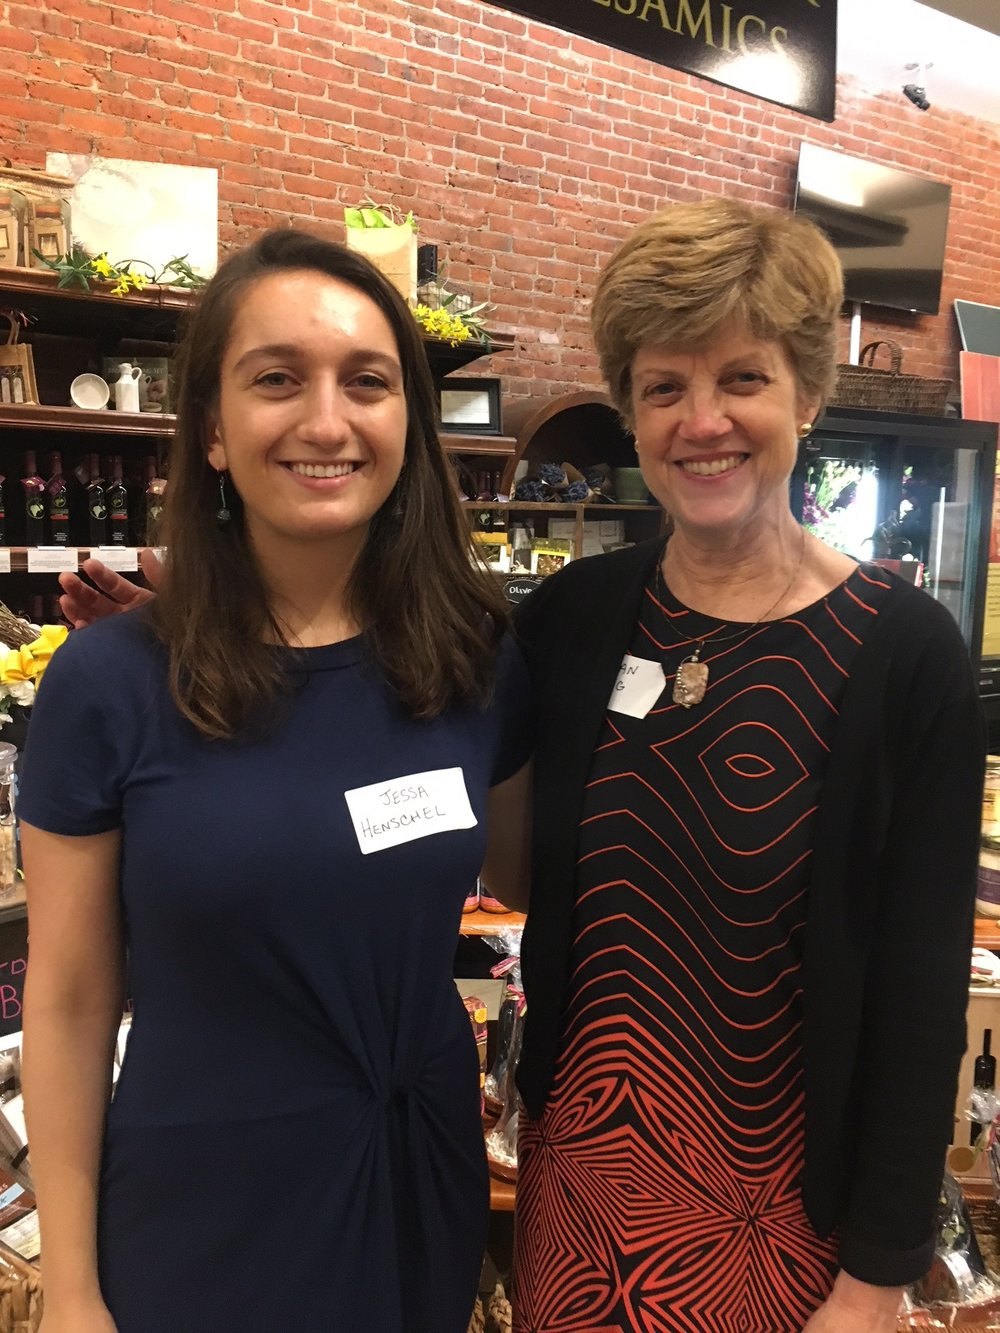 CivicStory PR Assistant Jessa Henschel and Creative Director Susan Haig at The Wine List in Summit, NJ on June 11, 2018